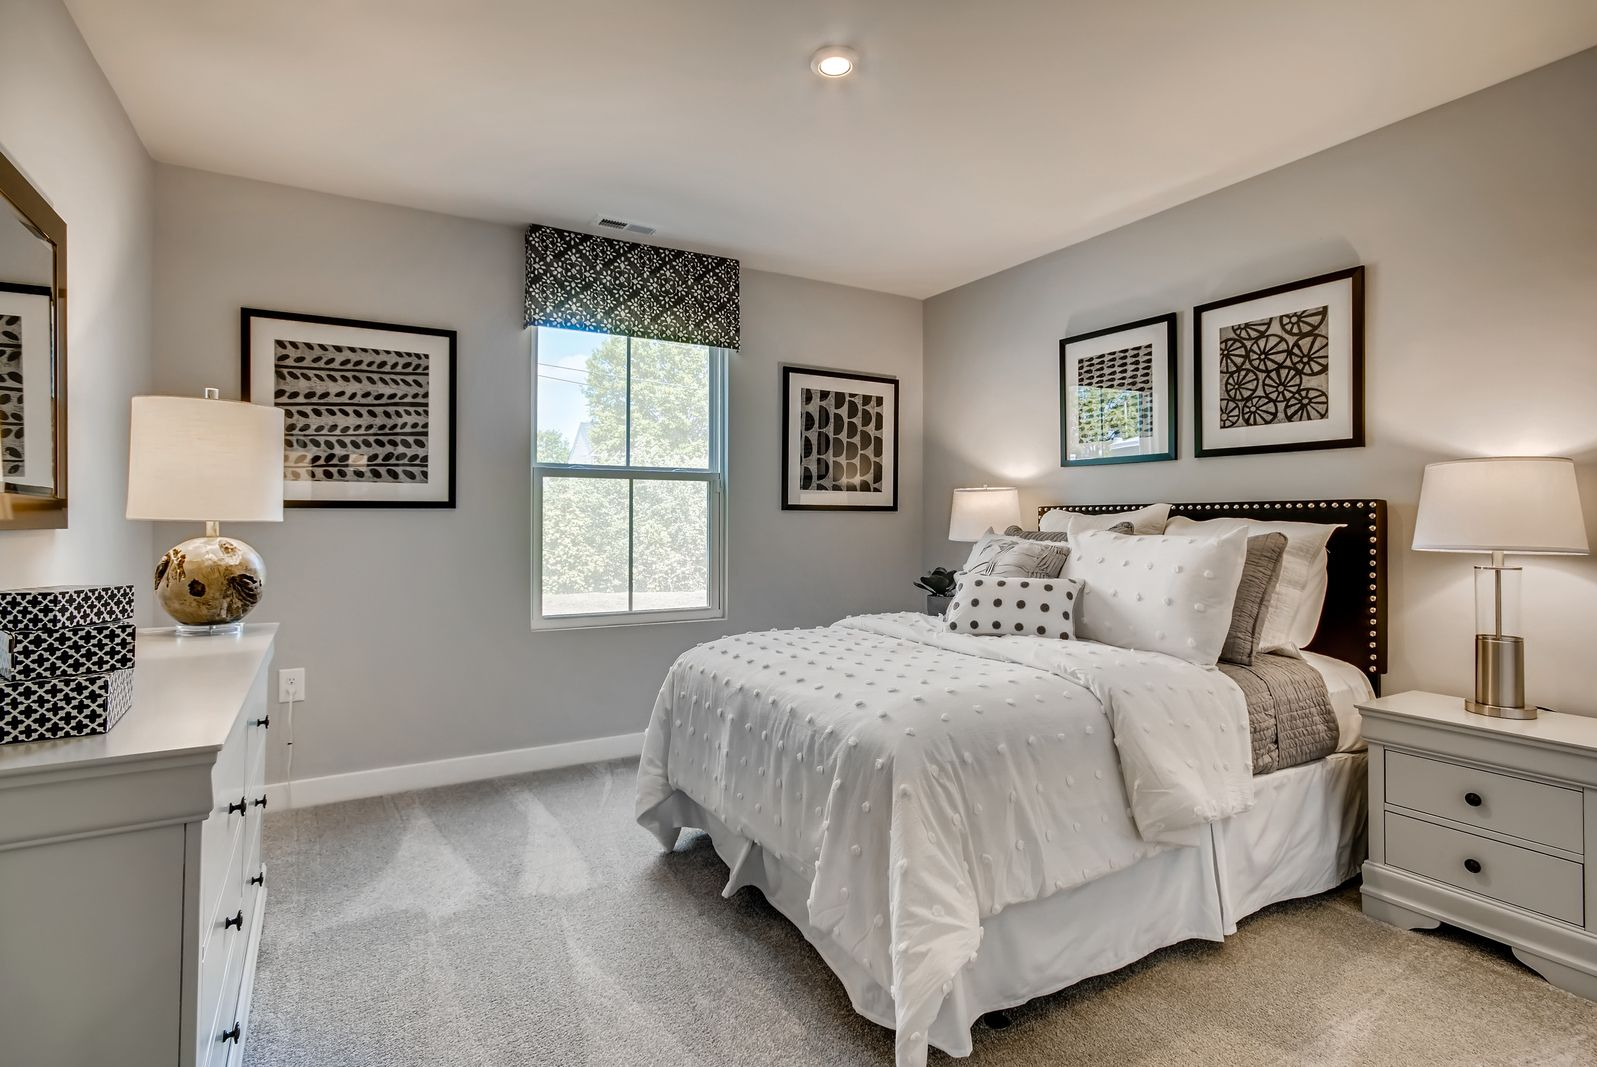 Bedroom featured in the Grand Cayman By Ryan Homes in Cleveland, OH